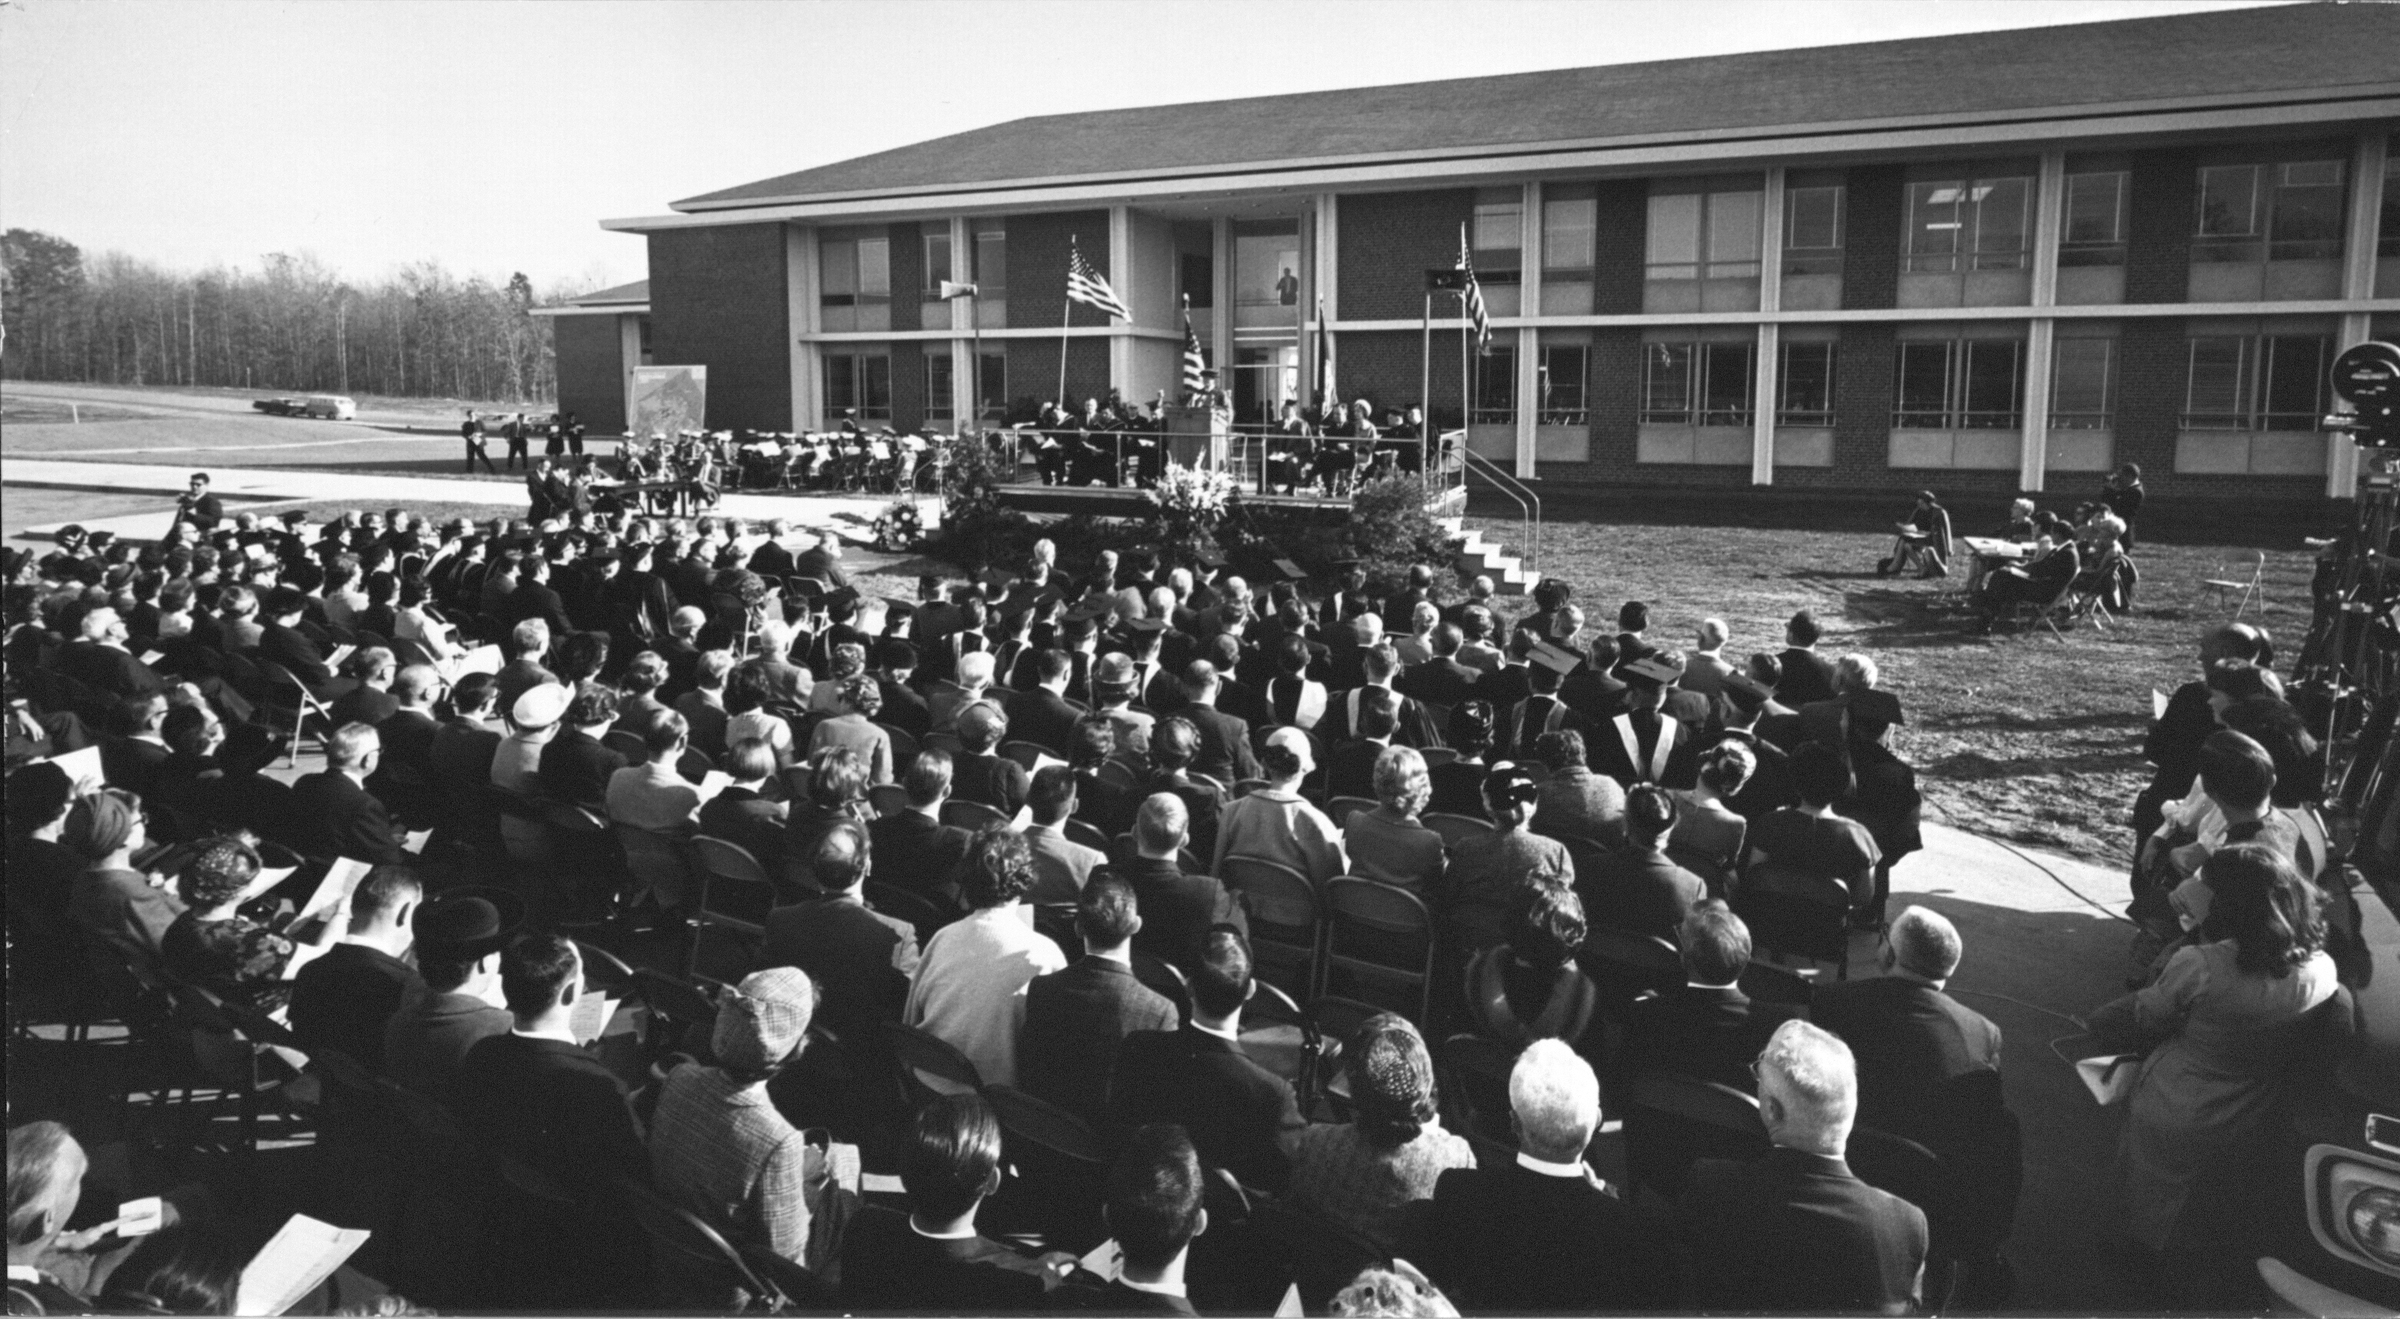 Speakers platform, George Mason College Dedication, Fairfax, Va., November 12, 1964.